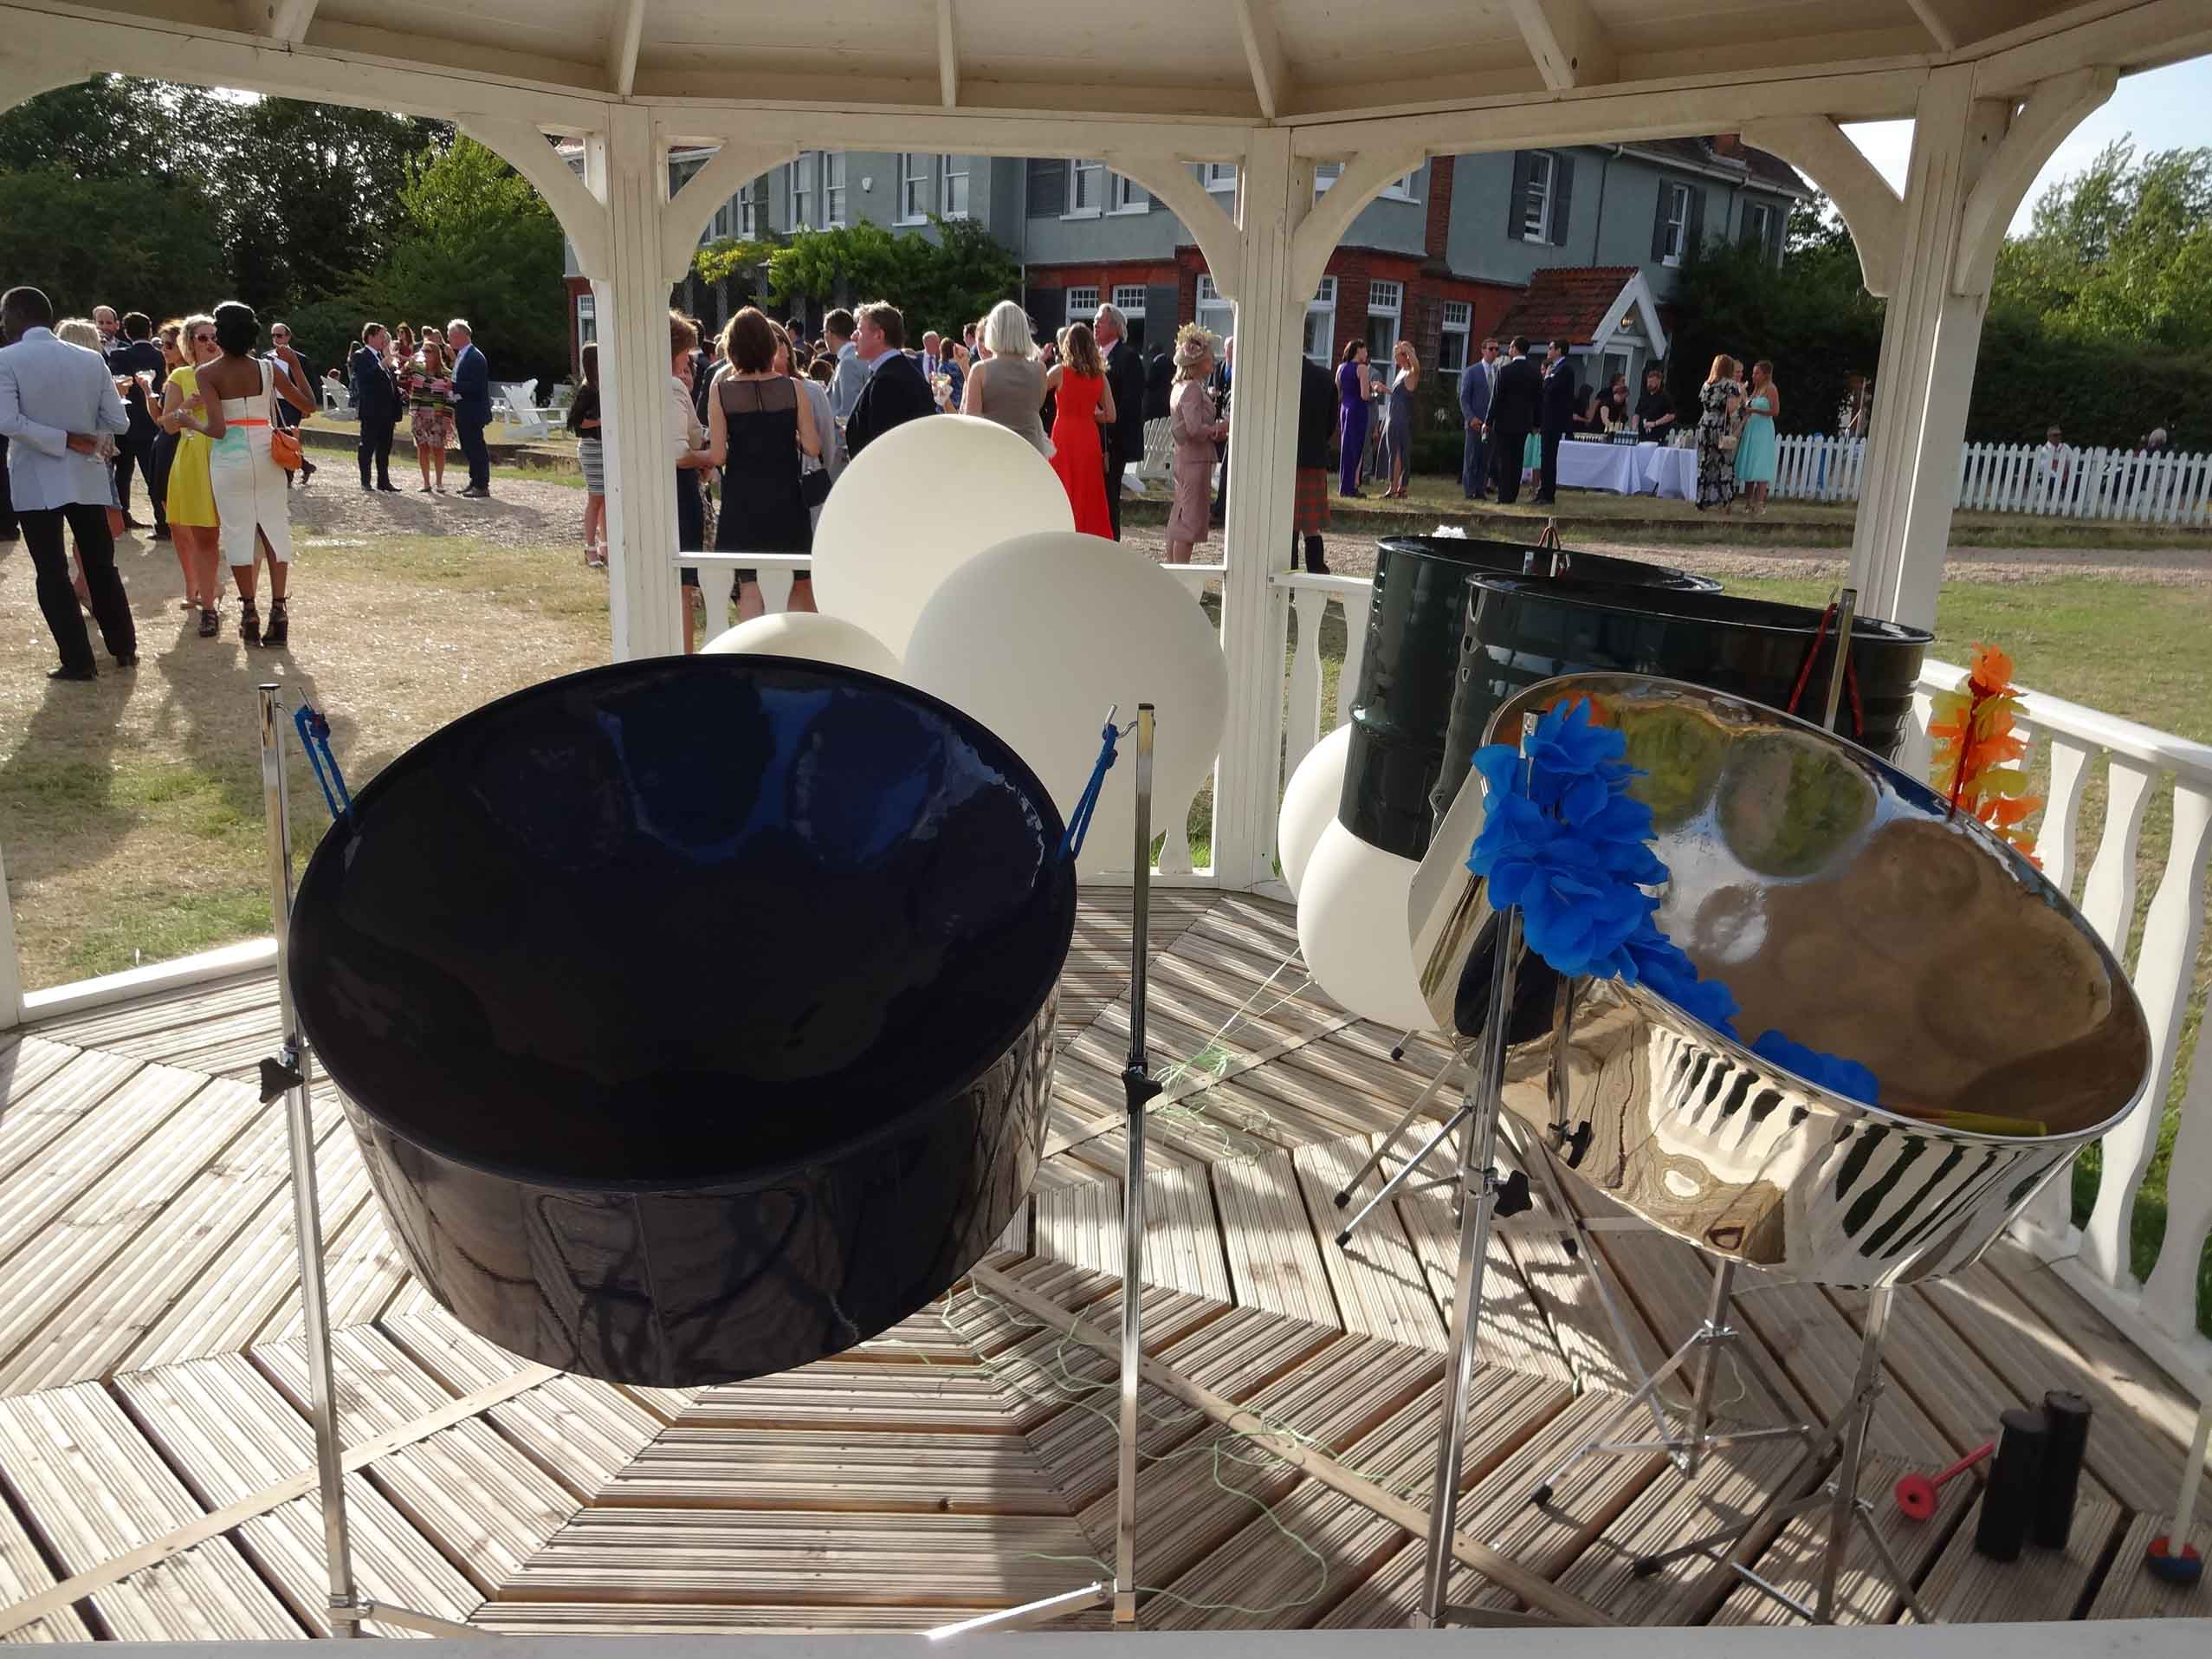 Steel bands in Hertfordshire, live band for party, live band hire London, live ensemble for small party, band hire Kensington, Knightsbridge, Sloane Street, Eaton Square, Pimlico,